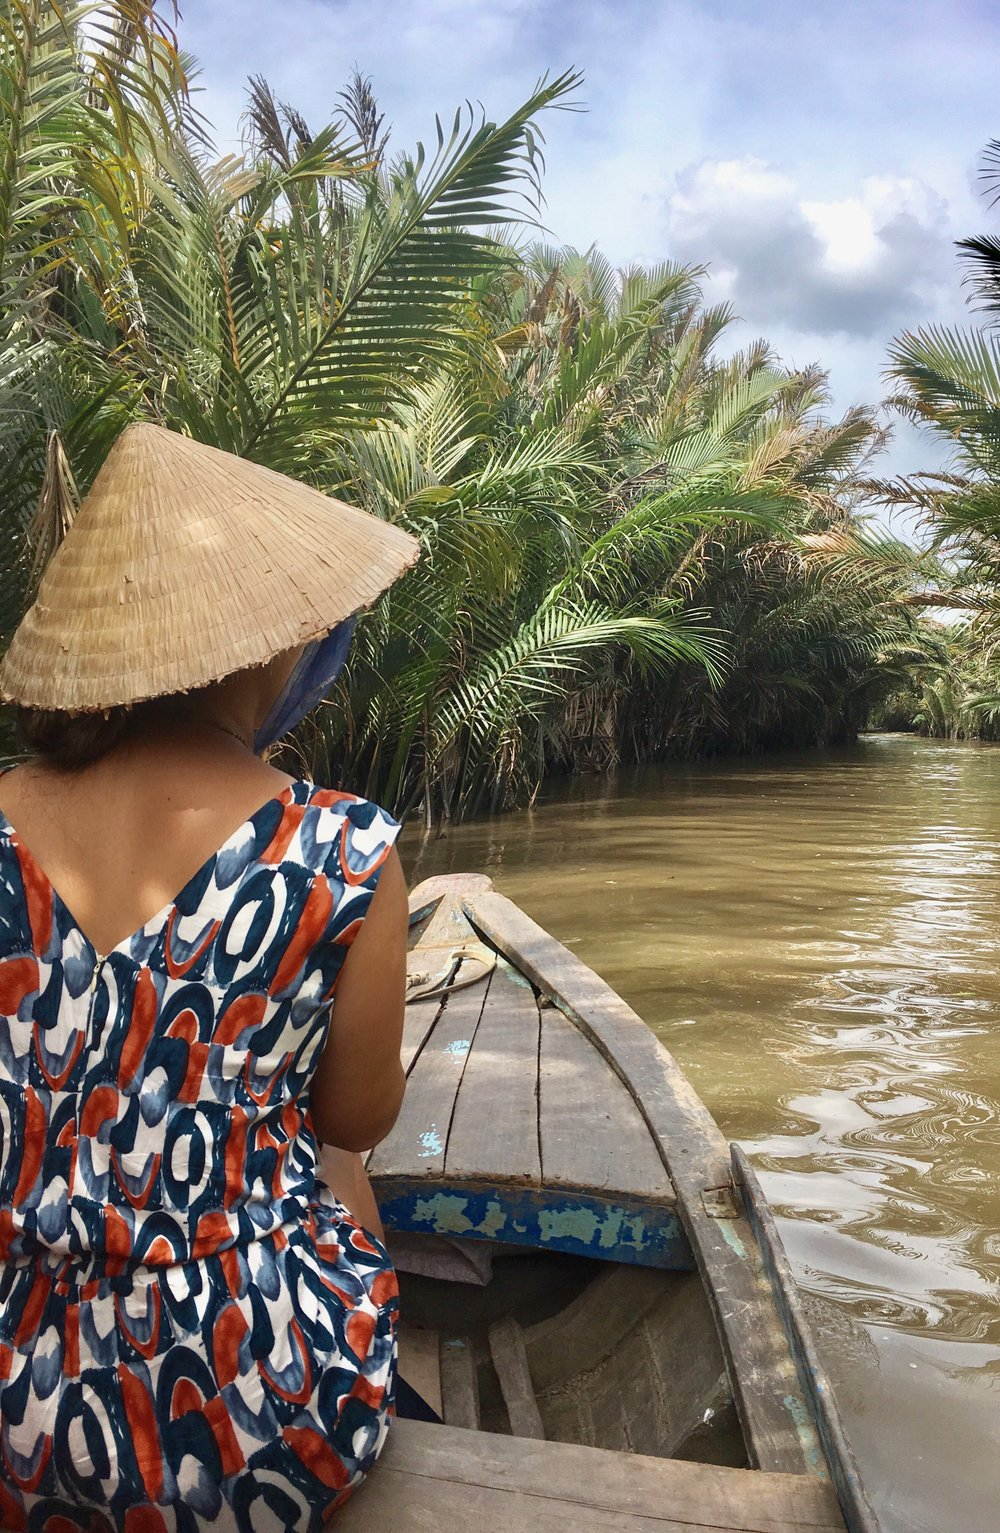 custom playsuit for boating on the Mekong Delta